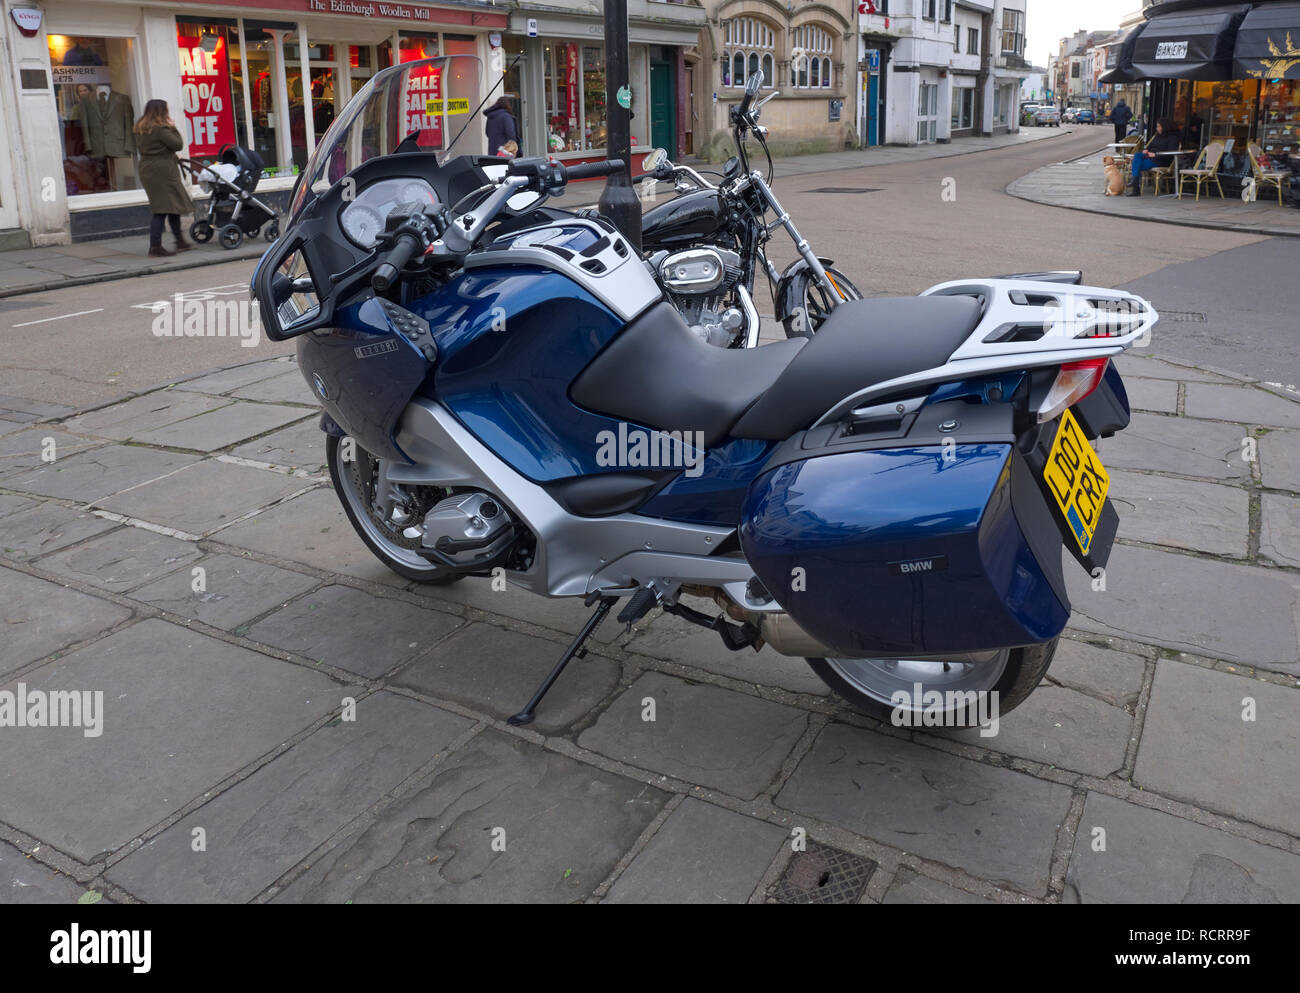 Bmw R 1200 R Stock Photos Bmw R 1200 R Stock Images Alamy